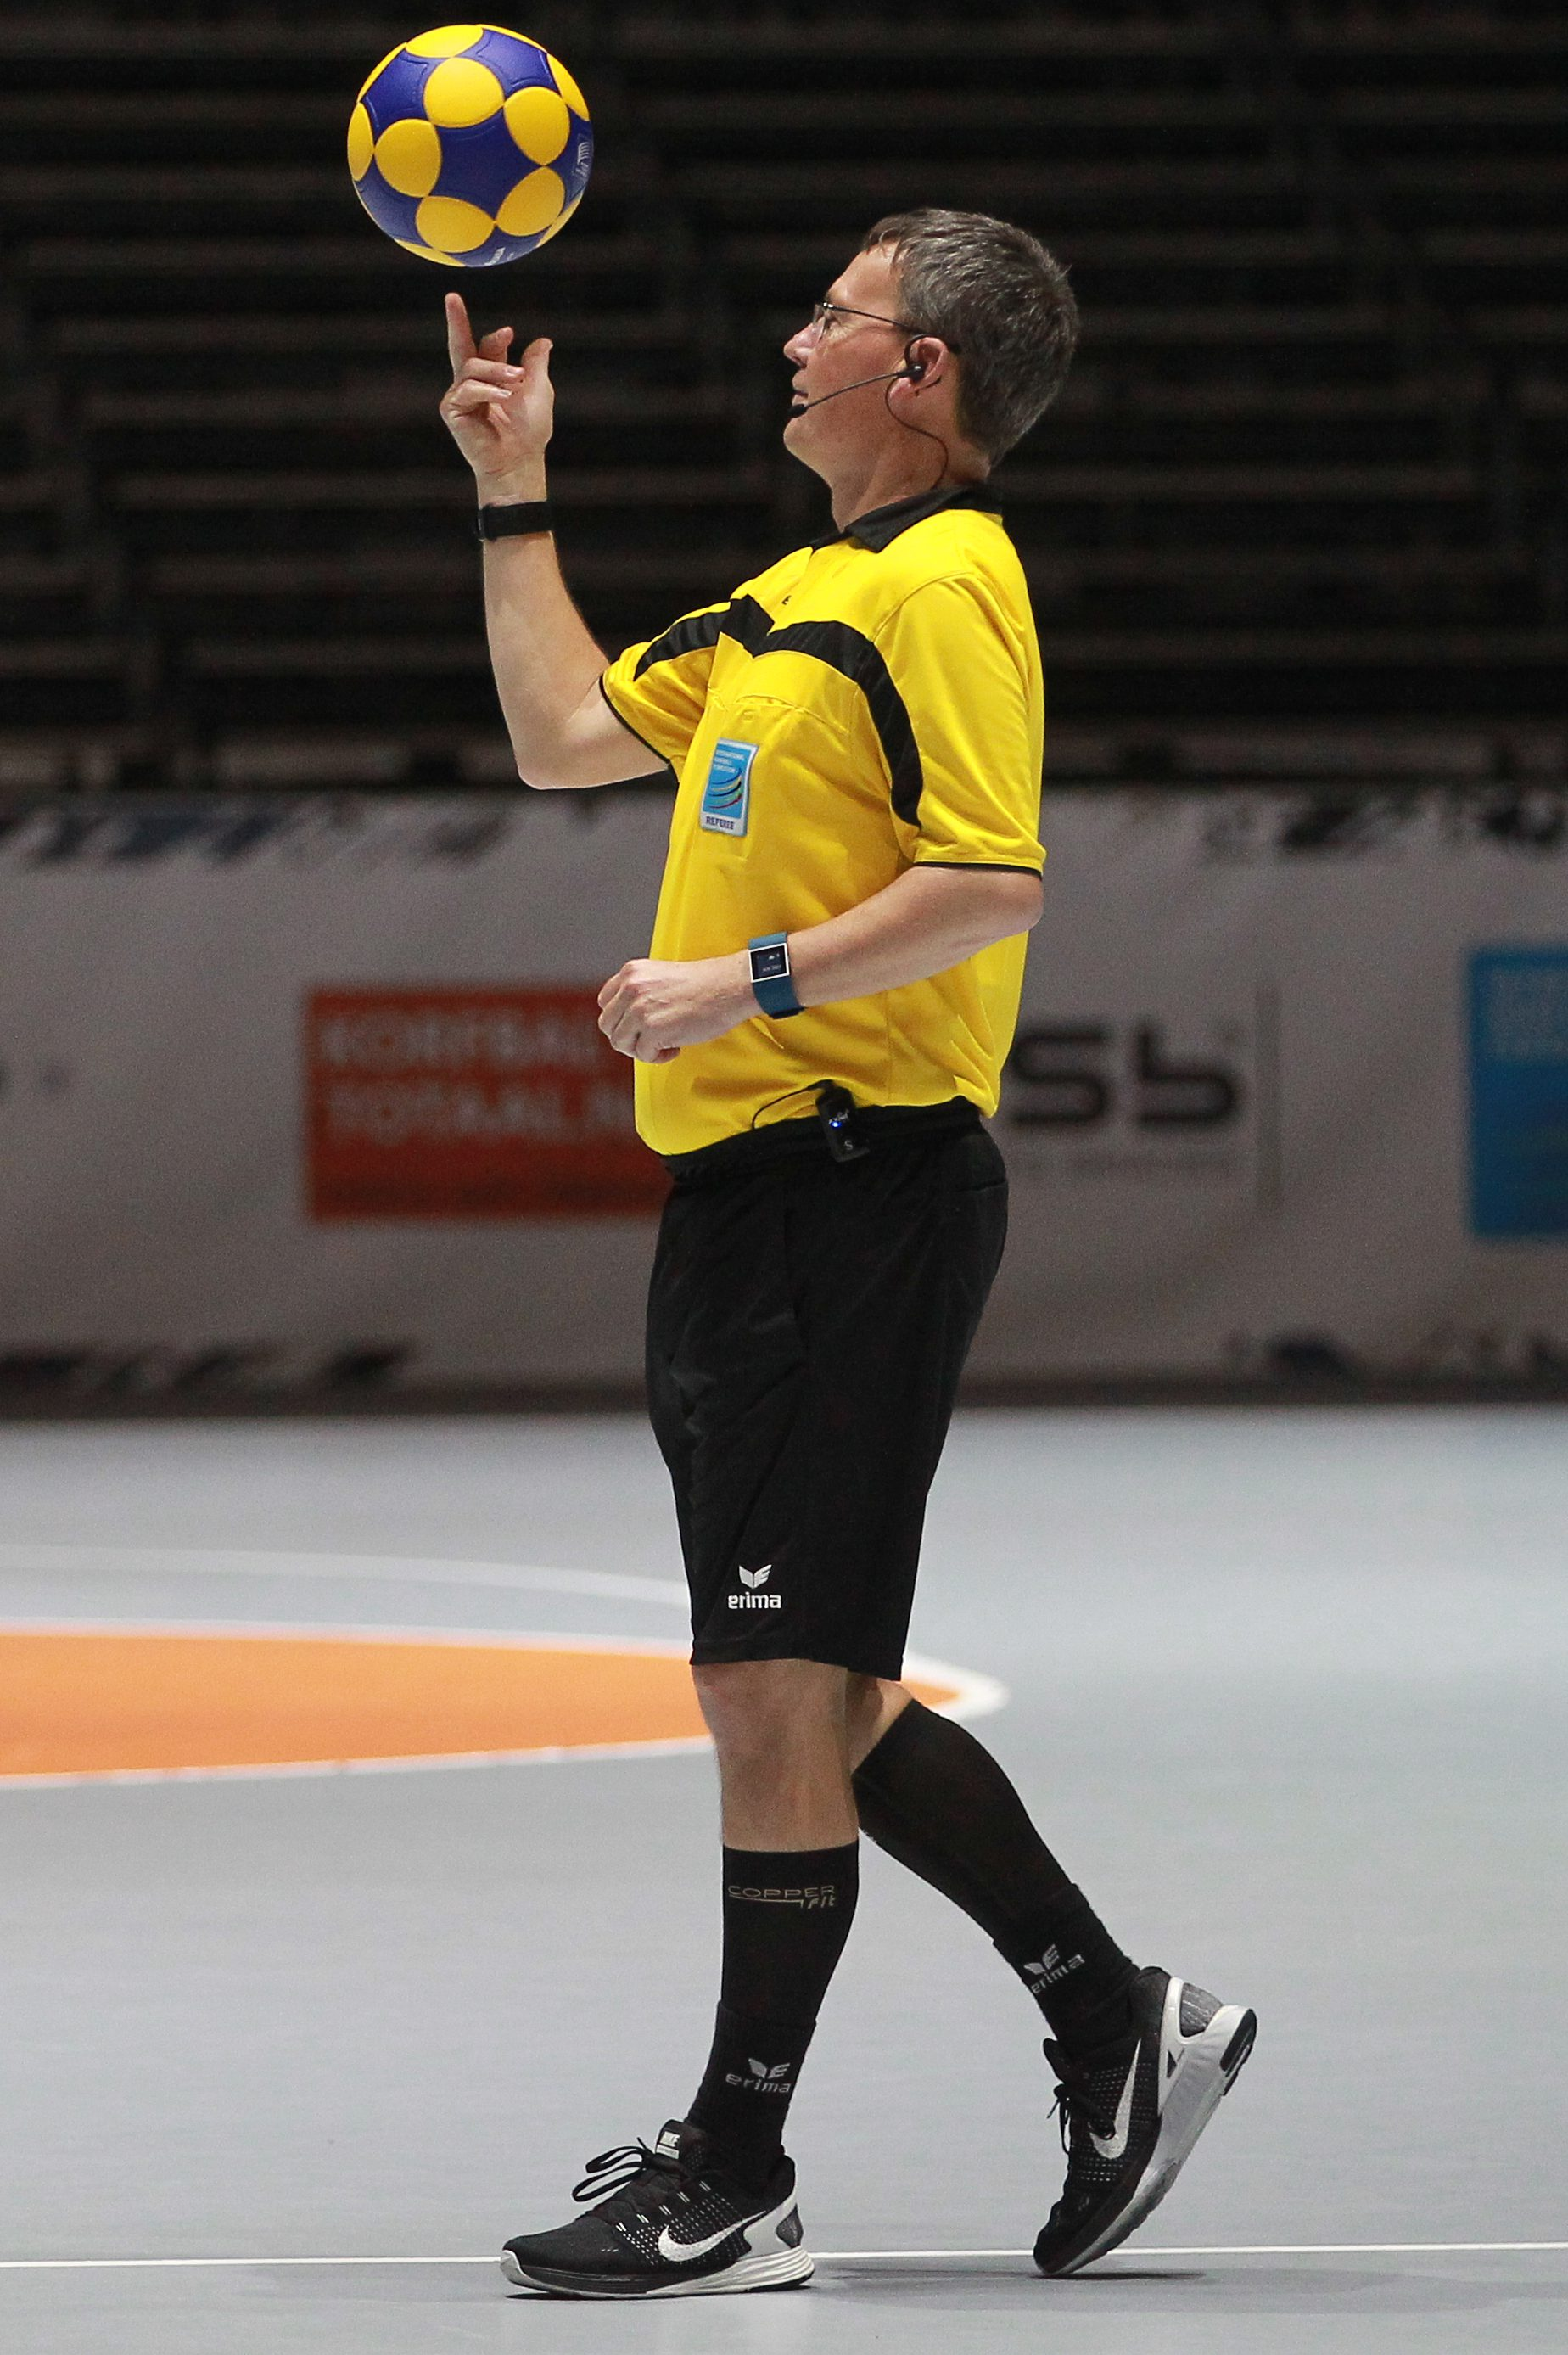 /wireless-communication-system-korfball-european-championship-axiwi-1